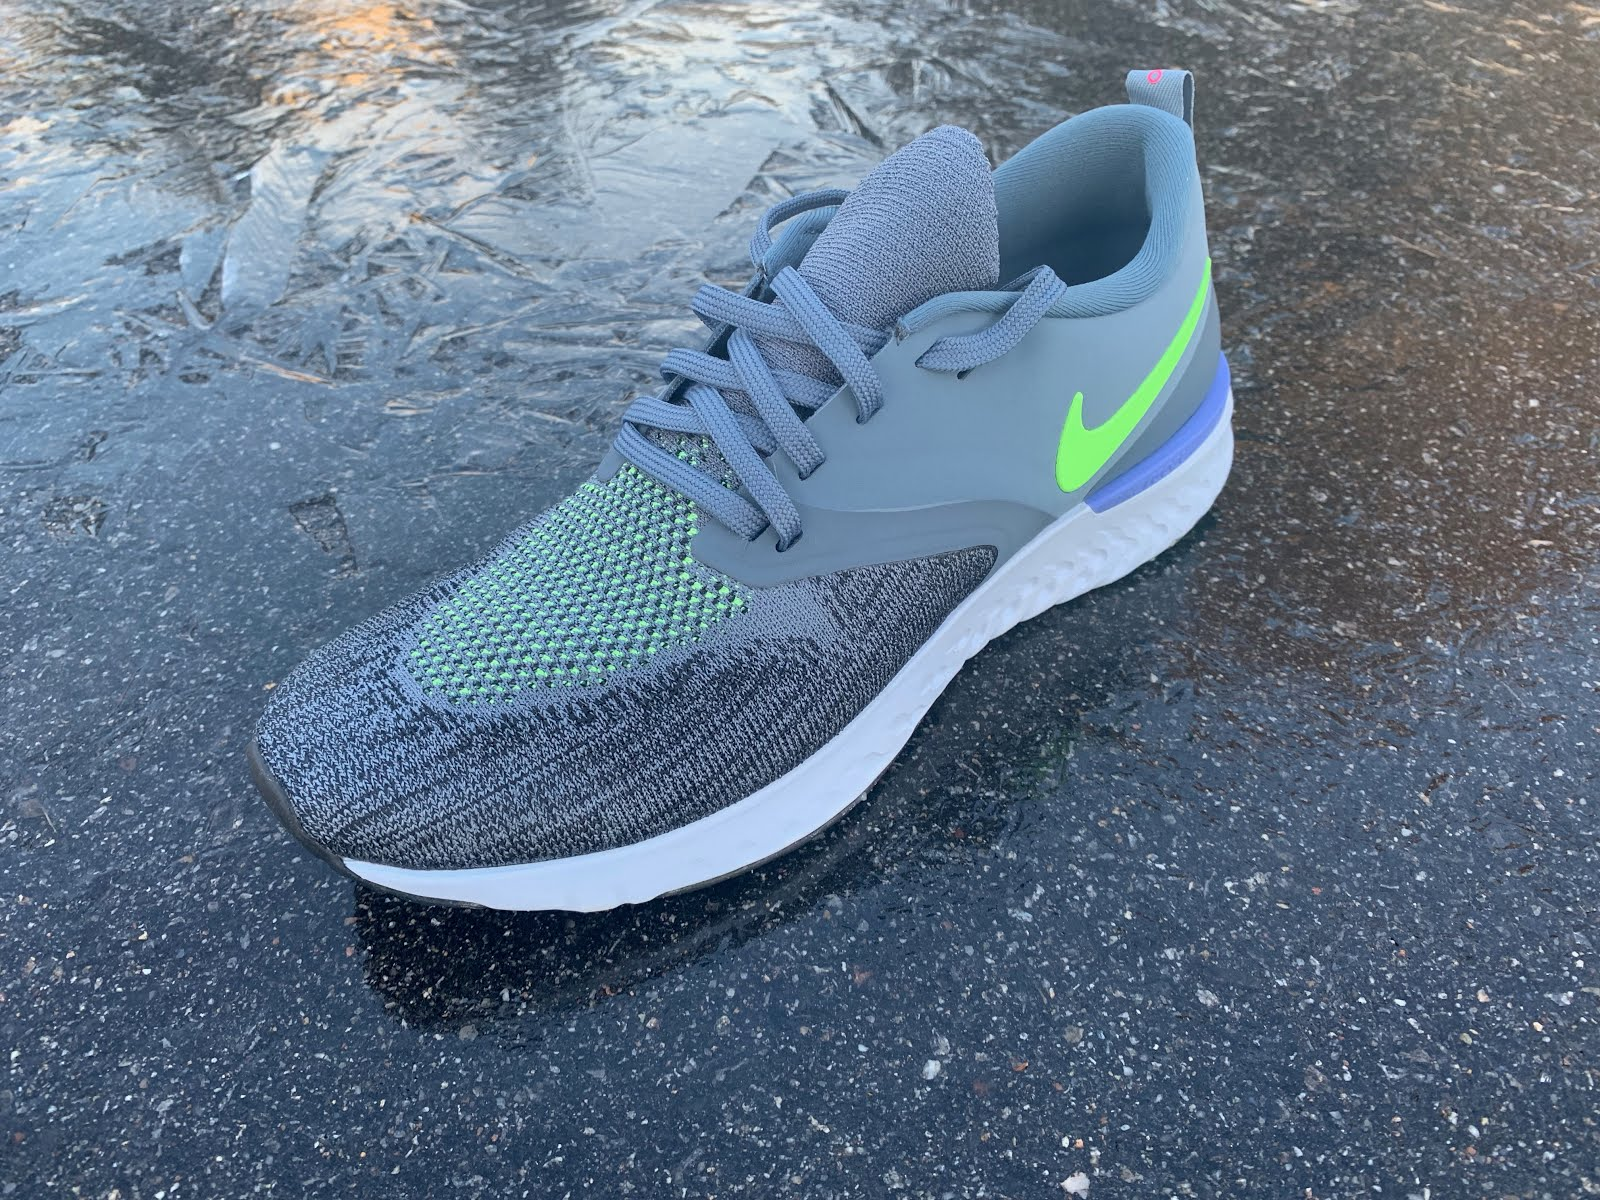 4a536090942 Road Trail Run  NIke Odyssey React 2 Flyknit Initial Review  It s ...